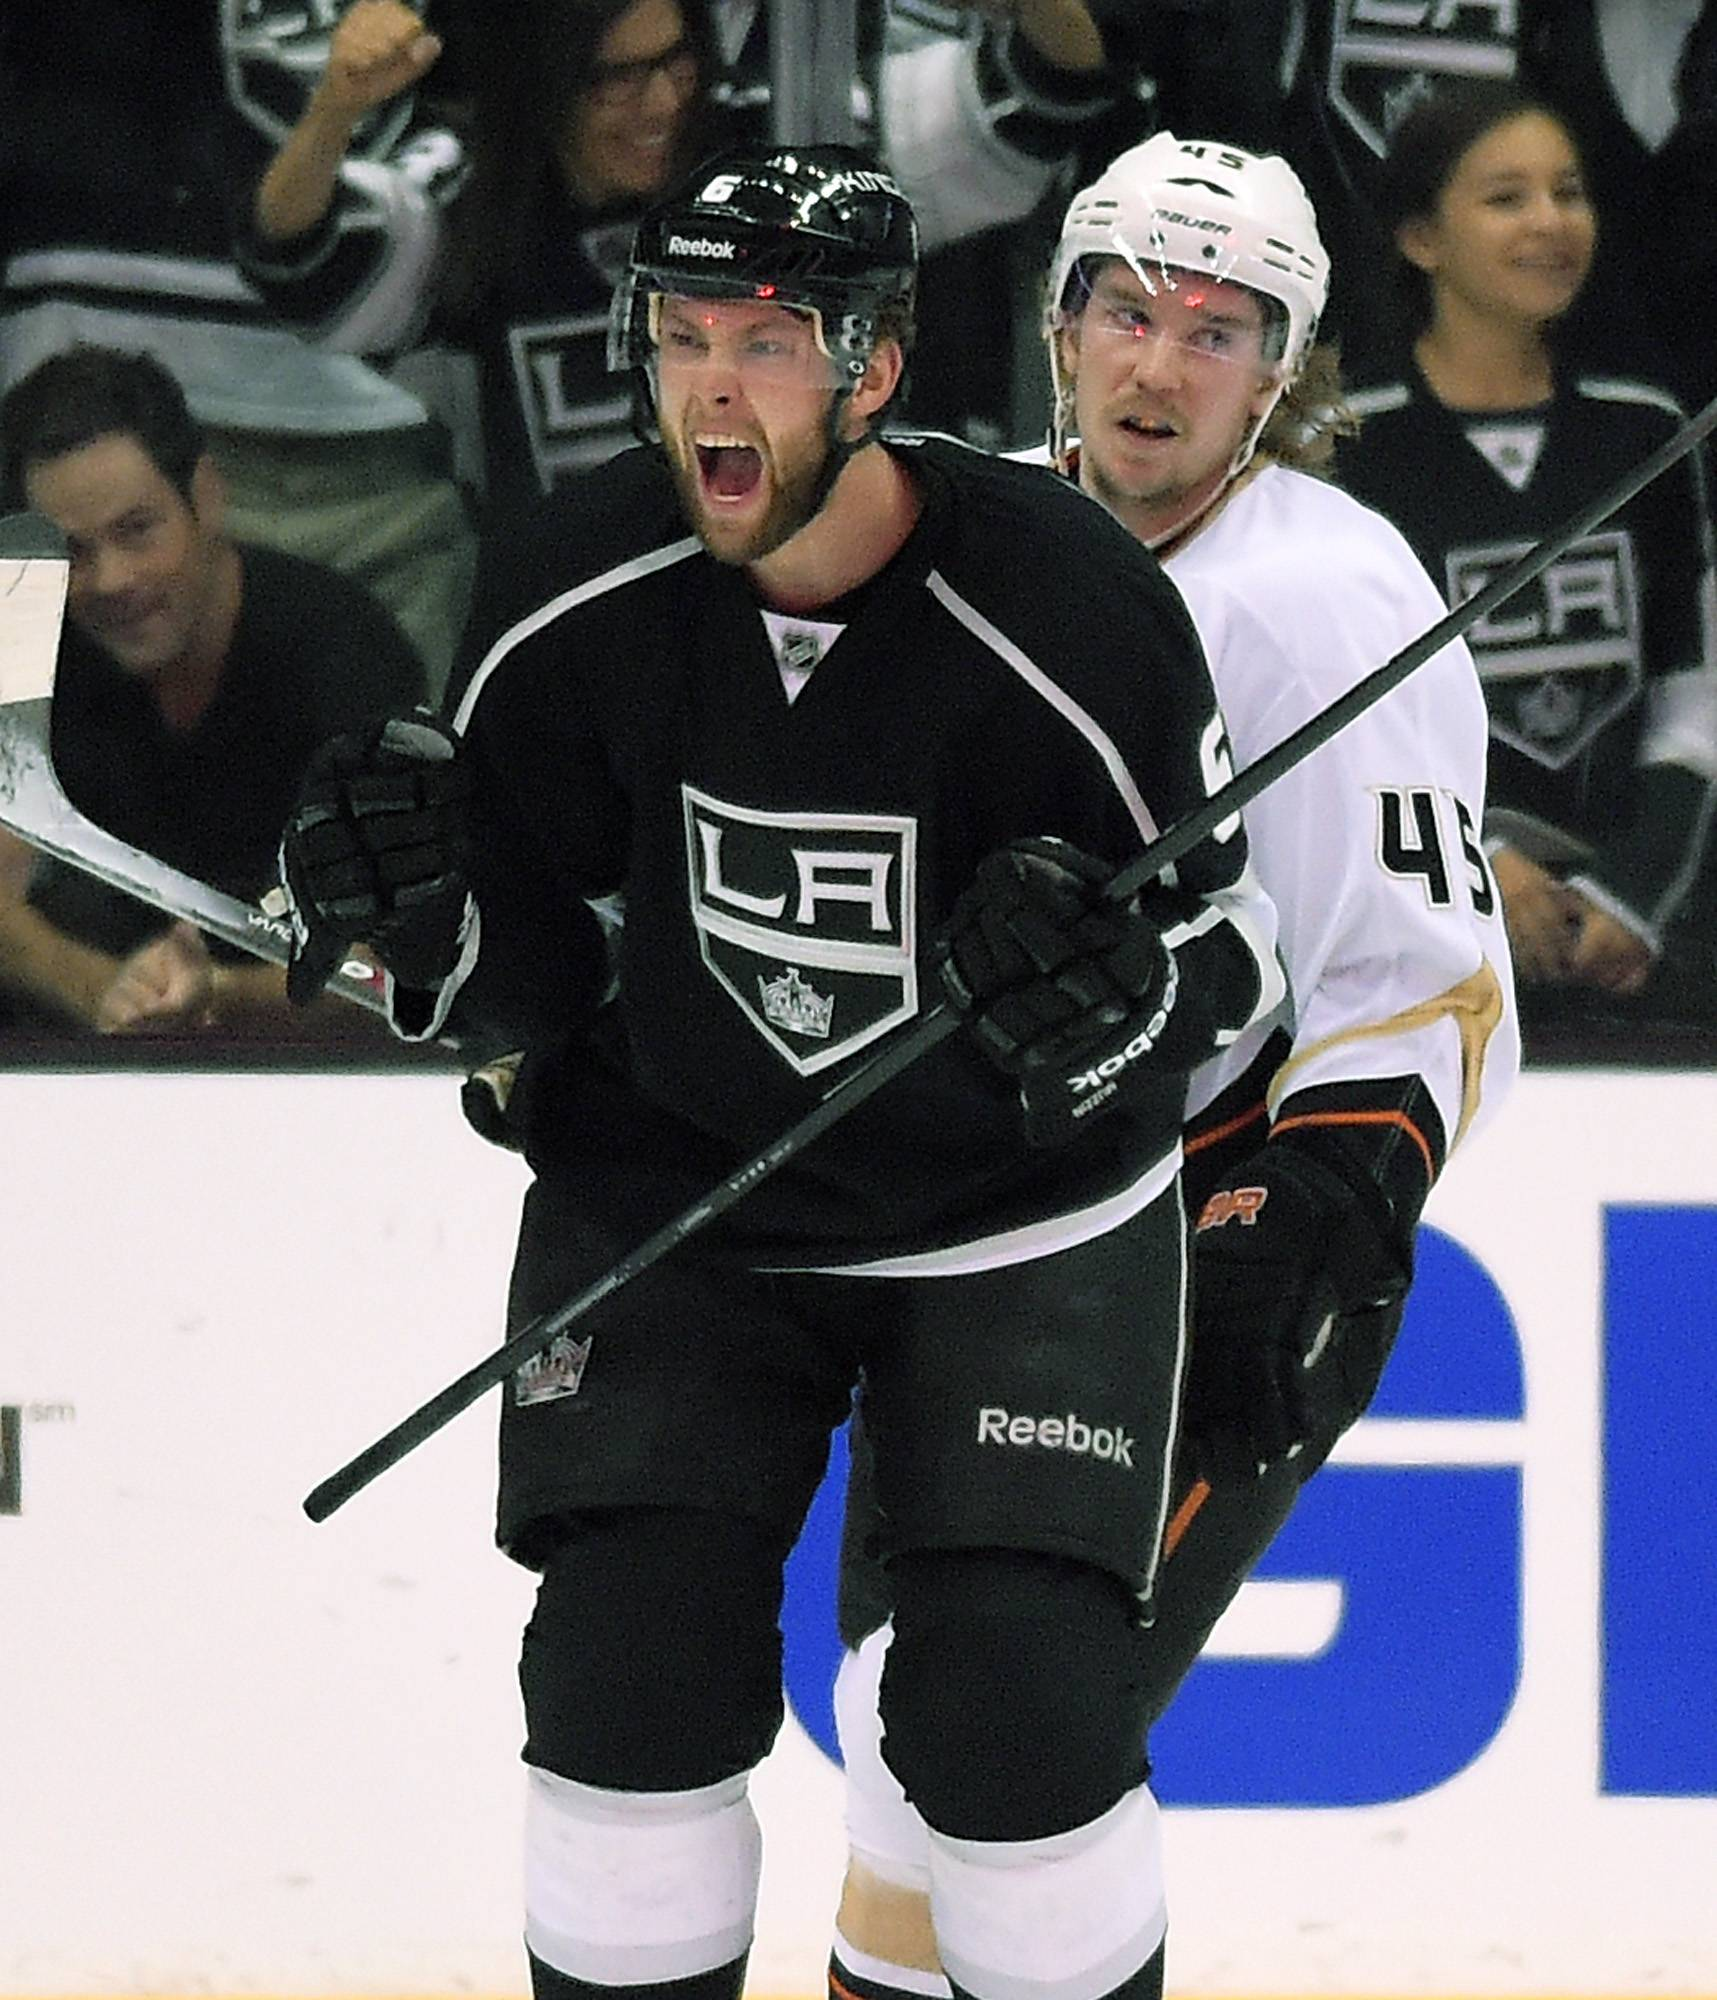 Los Angeles Kings defenseman Jake Muzzin, left, celebrates his goal as Anaheim Ducks left wing Patrick Maroon looks on during the first period in Game 6 of an NHL hockey second-round Stanley Cup playoff series, Wednesday, May 14, 2014, in Los Angeles.